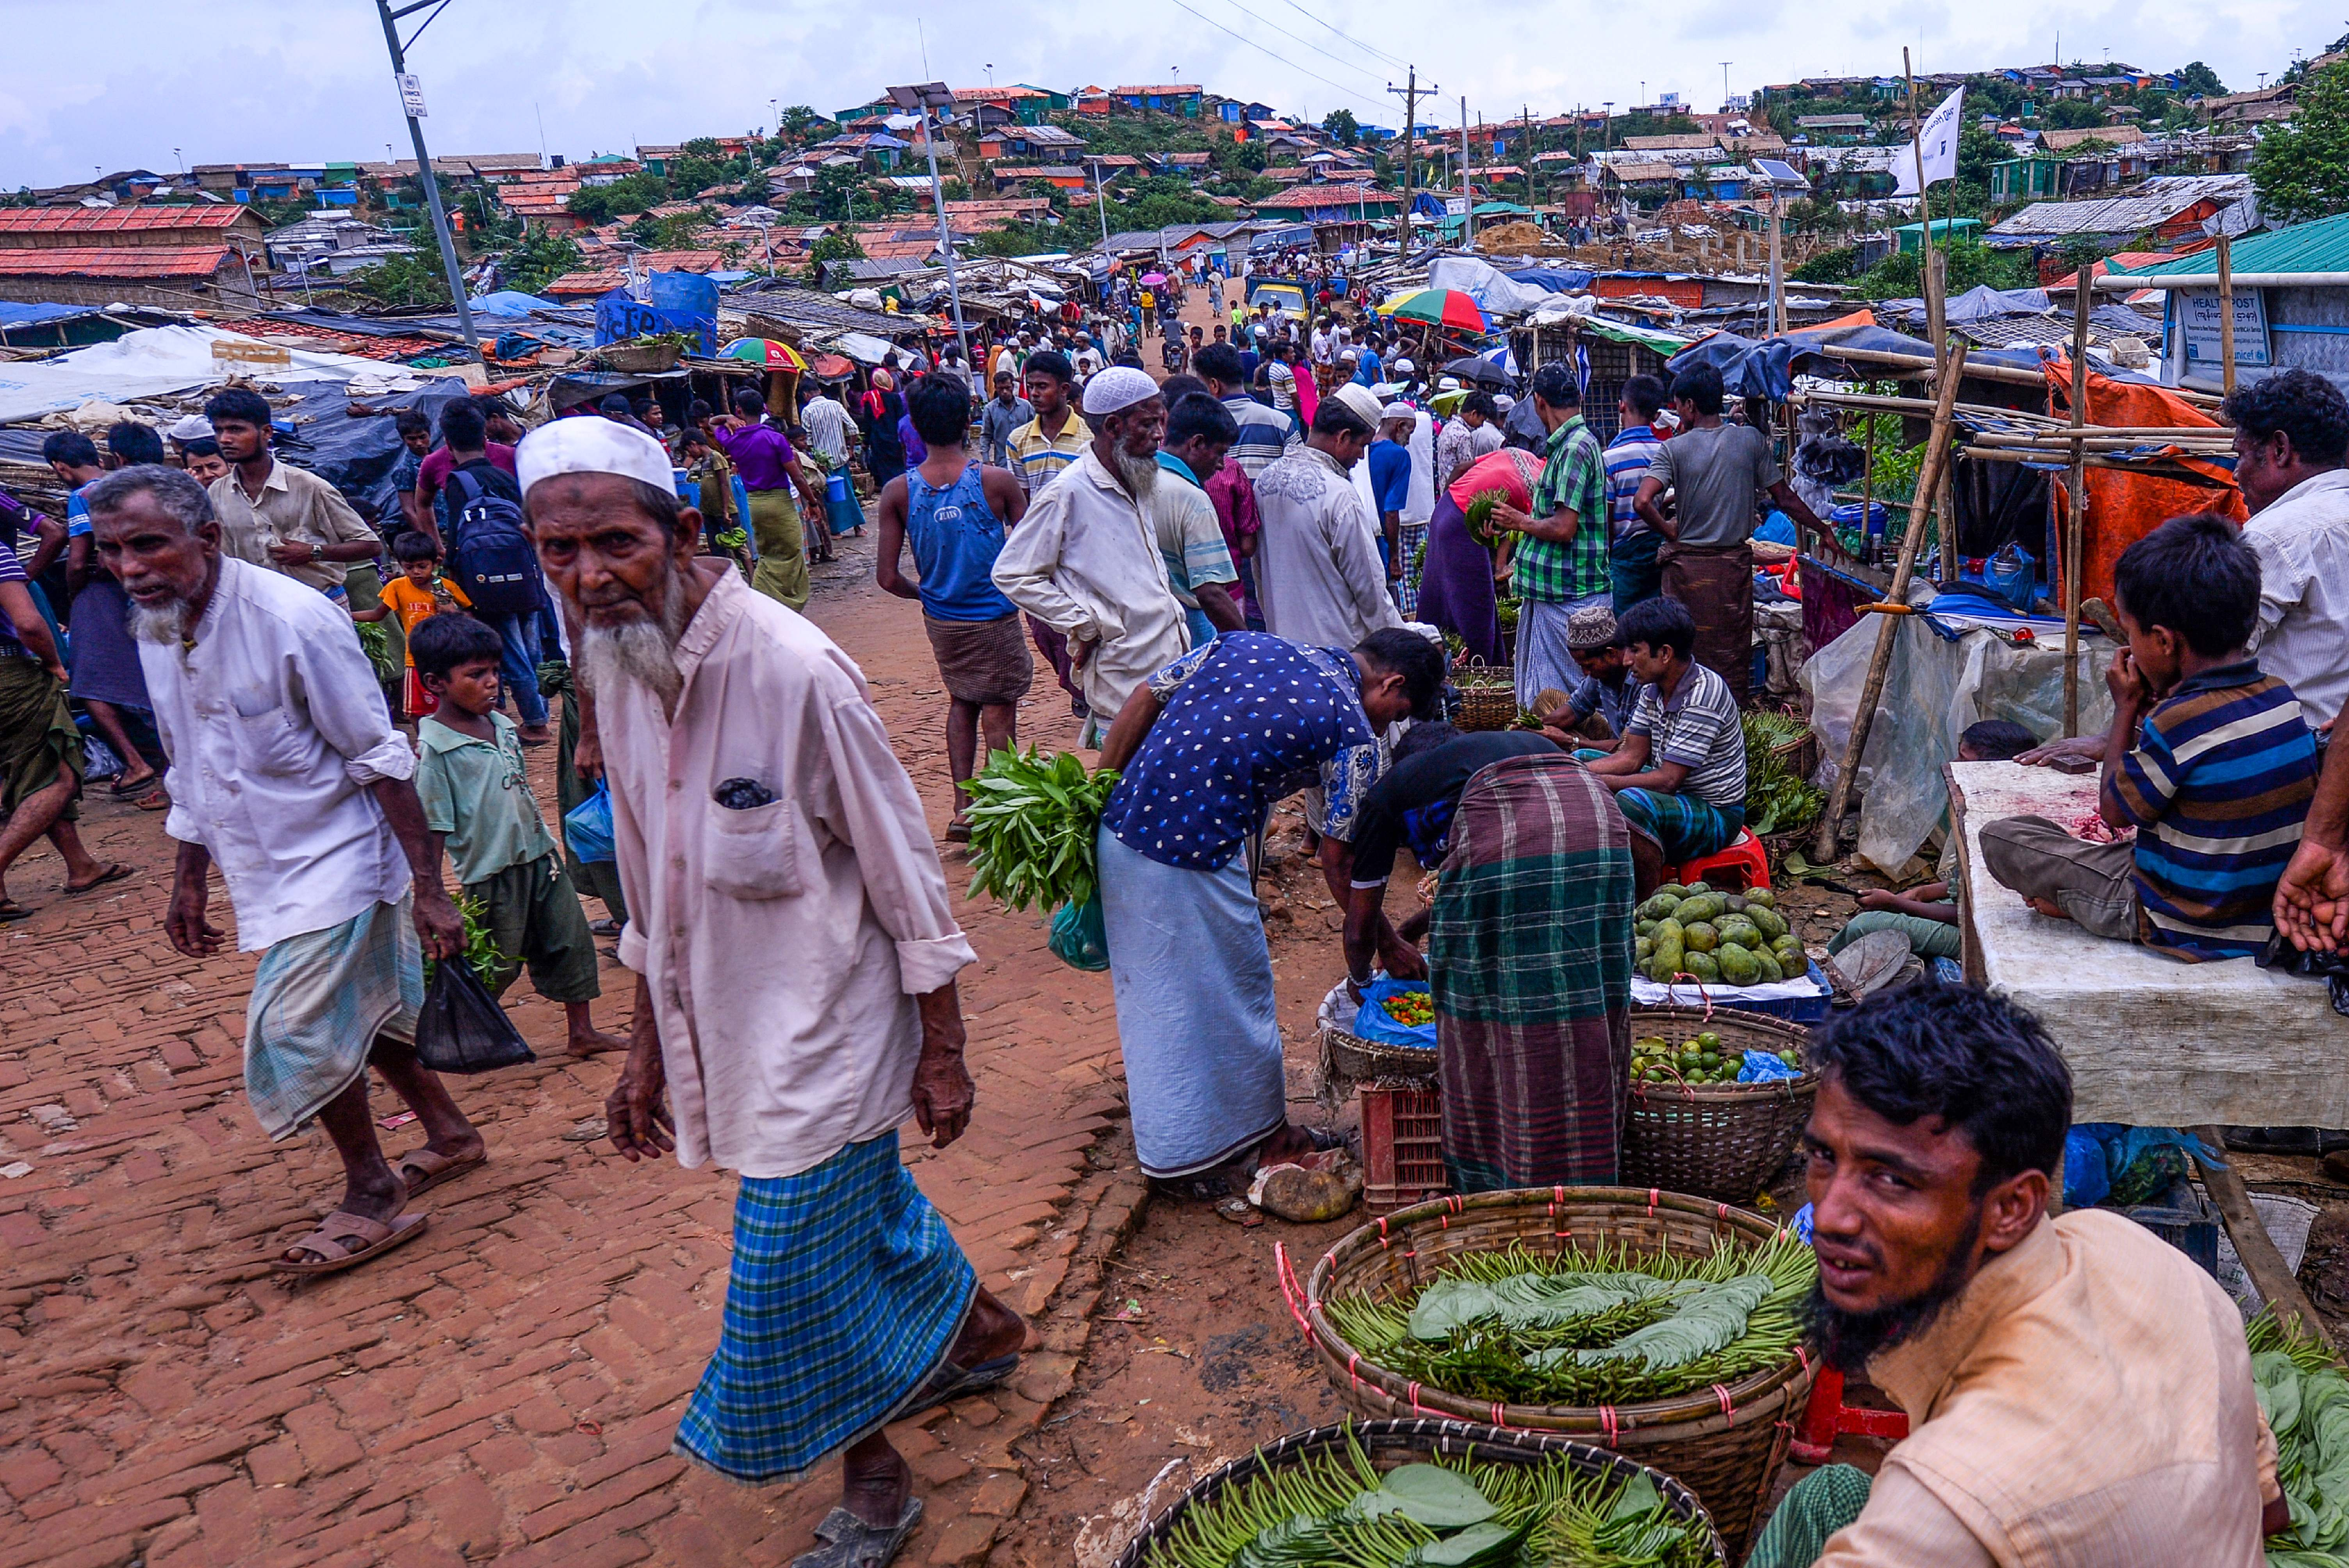 A Rohingya man sells betel leaves at a market at Kutupalong refugee camp in Ukhia on July 21, 2019. (Photo by MUNIR UZ ZAMAN / AFP)        (Photo credit should read MUNIR UZ ZAMAN/AFP/Getty Images)